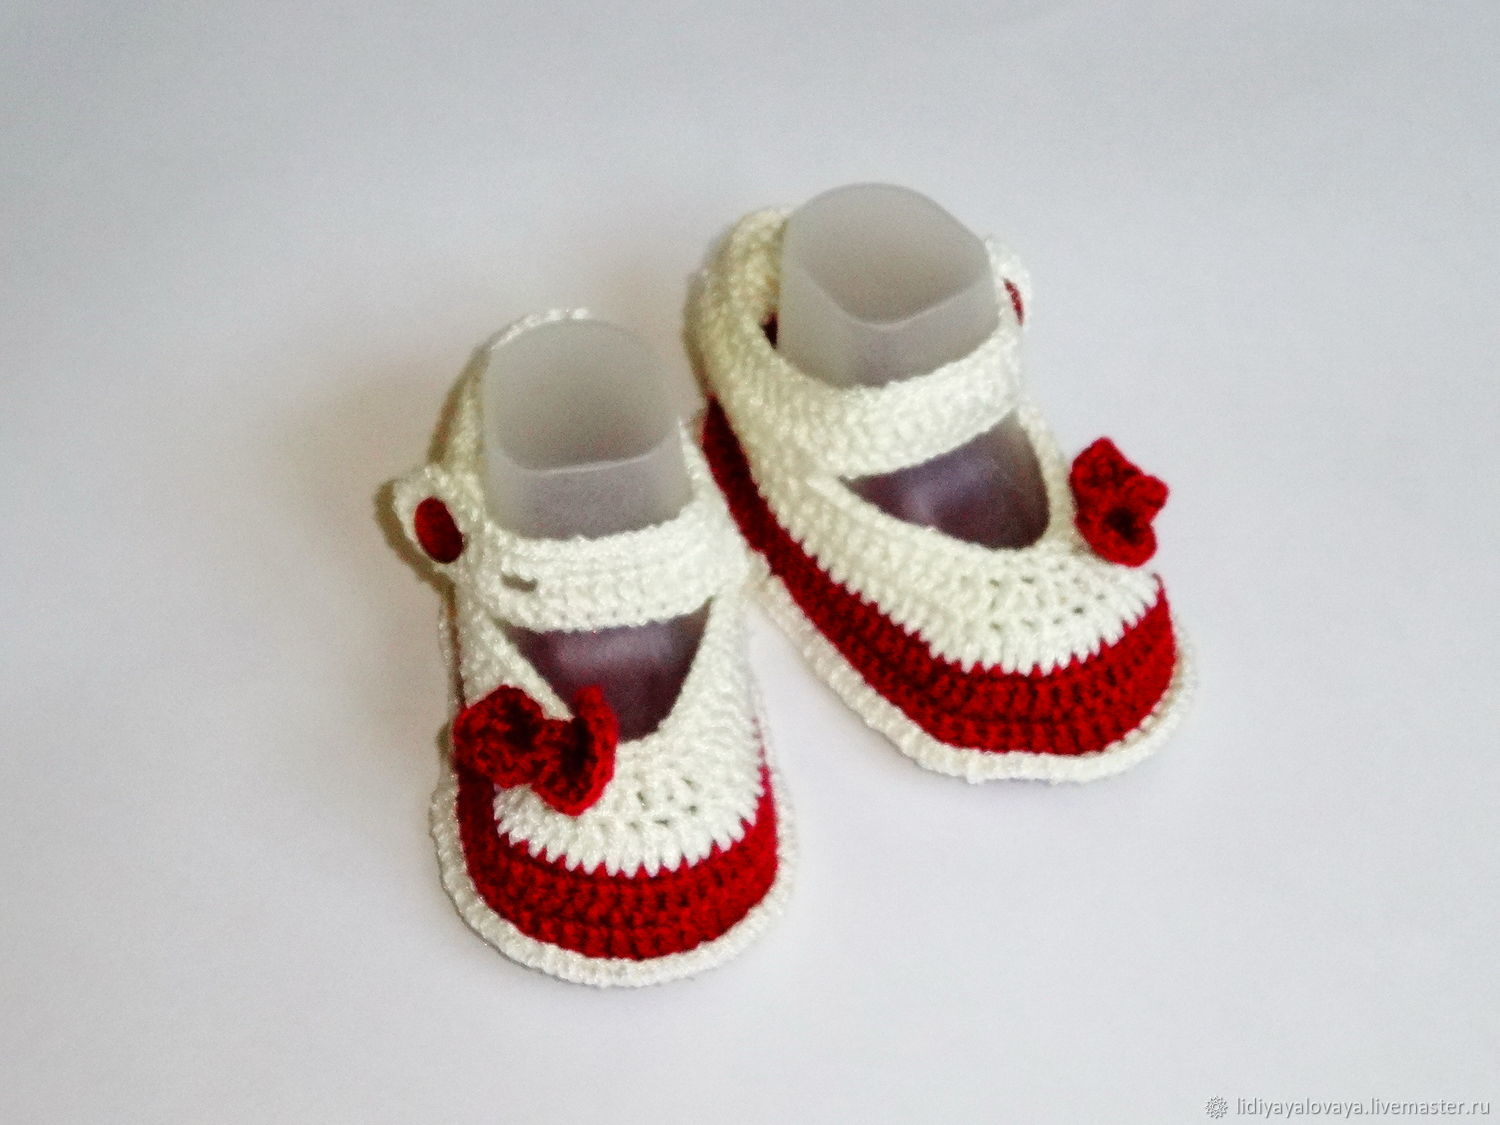 Booties, booties shoes, baby booties to girls booties for baby, knitted booties, booties to buy, baby gift, gift for newborn.